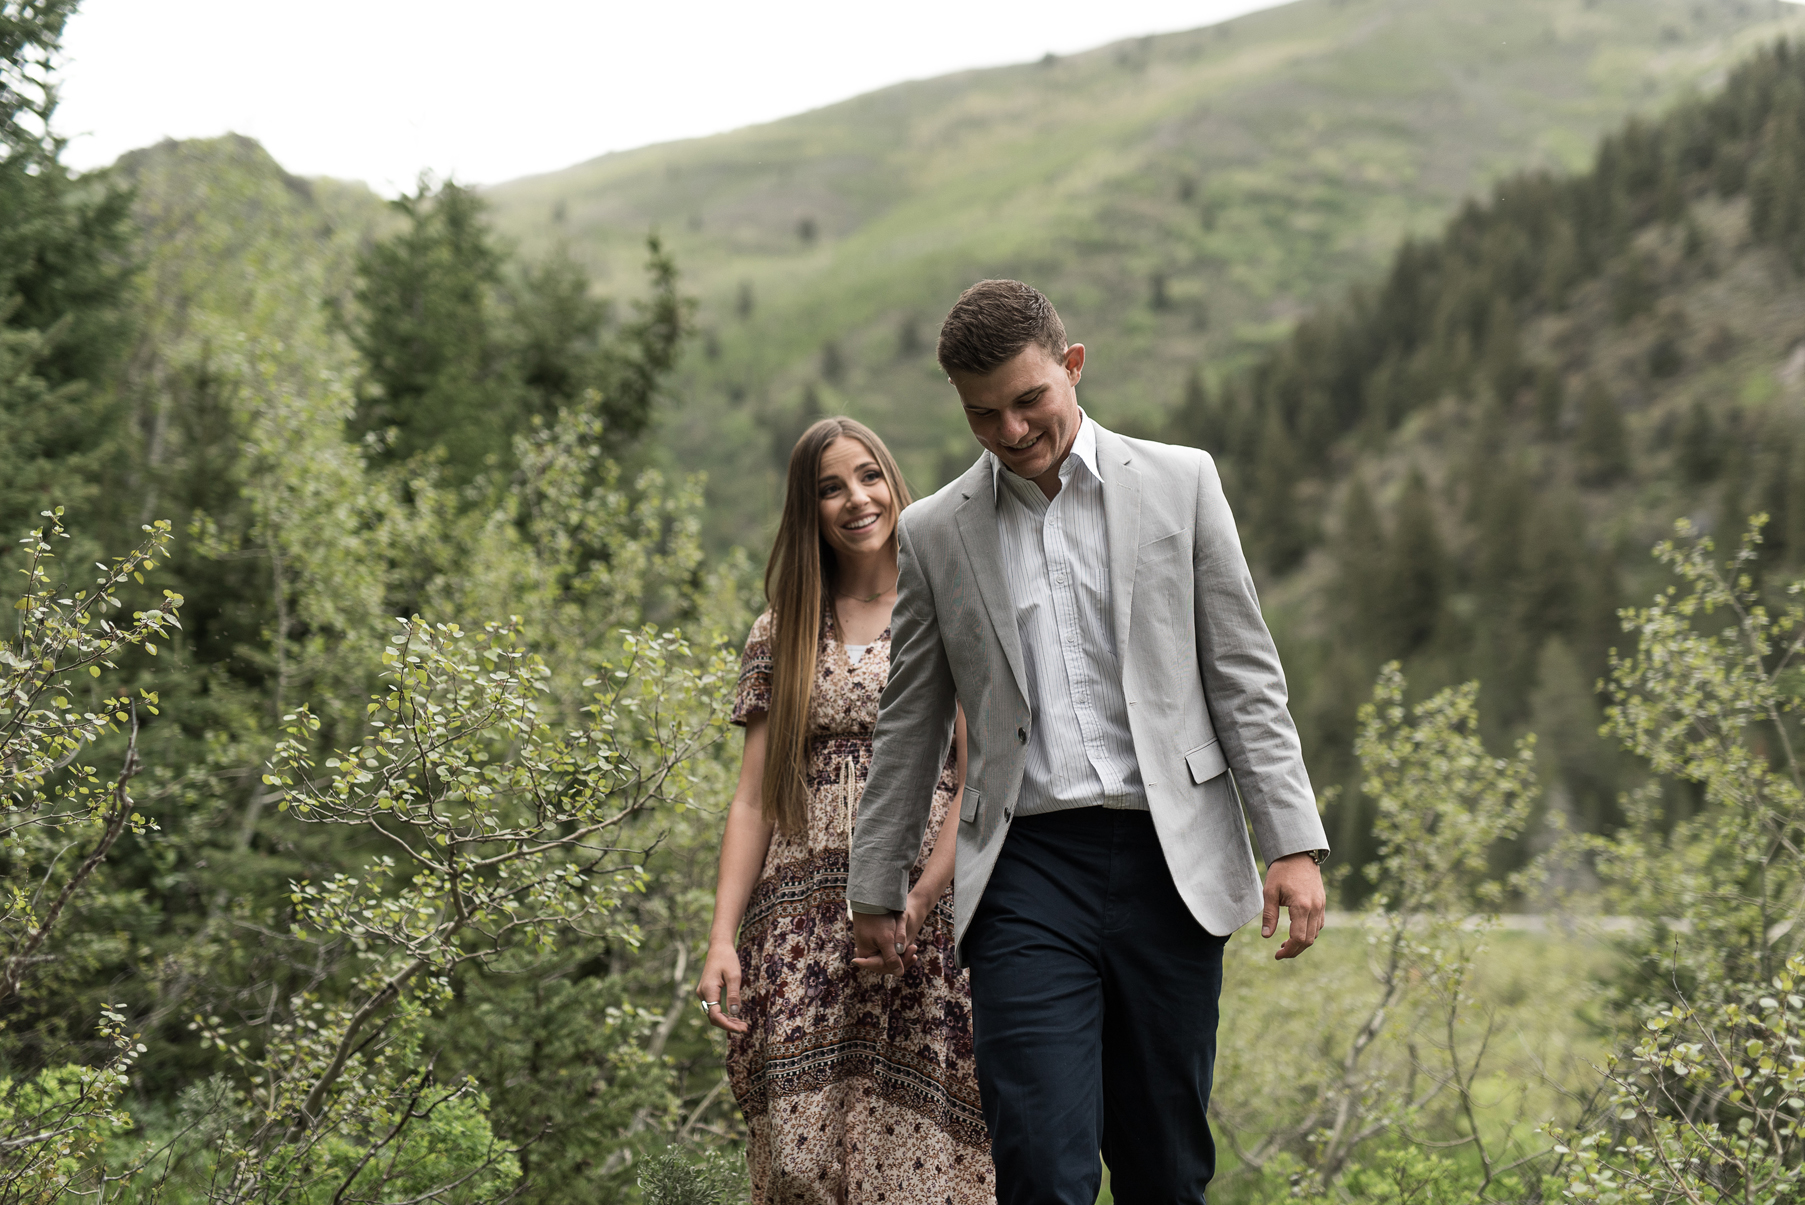 candid wedding photography in utah